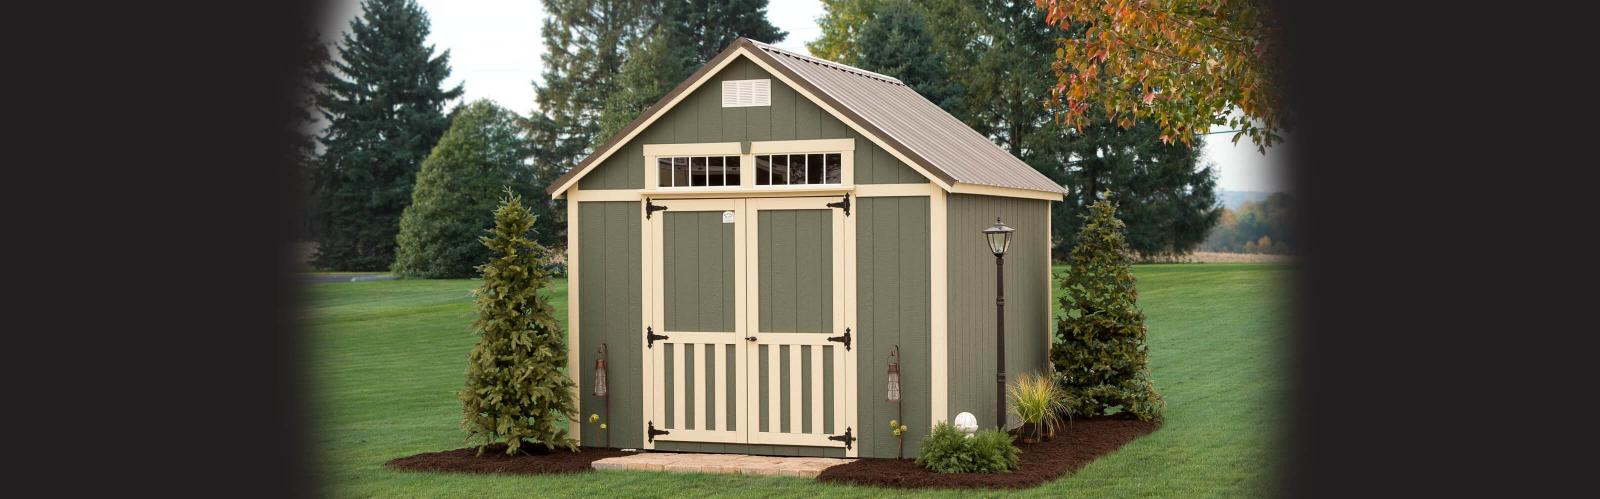 storage barn buildings cabin best richmond building lakewood by large sentry diy kit product shed cabins